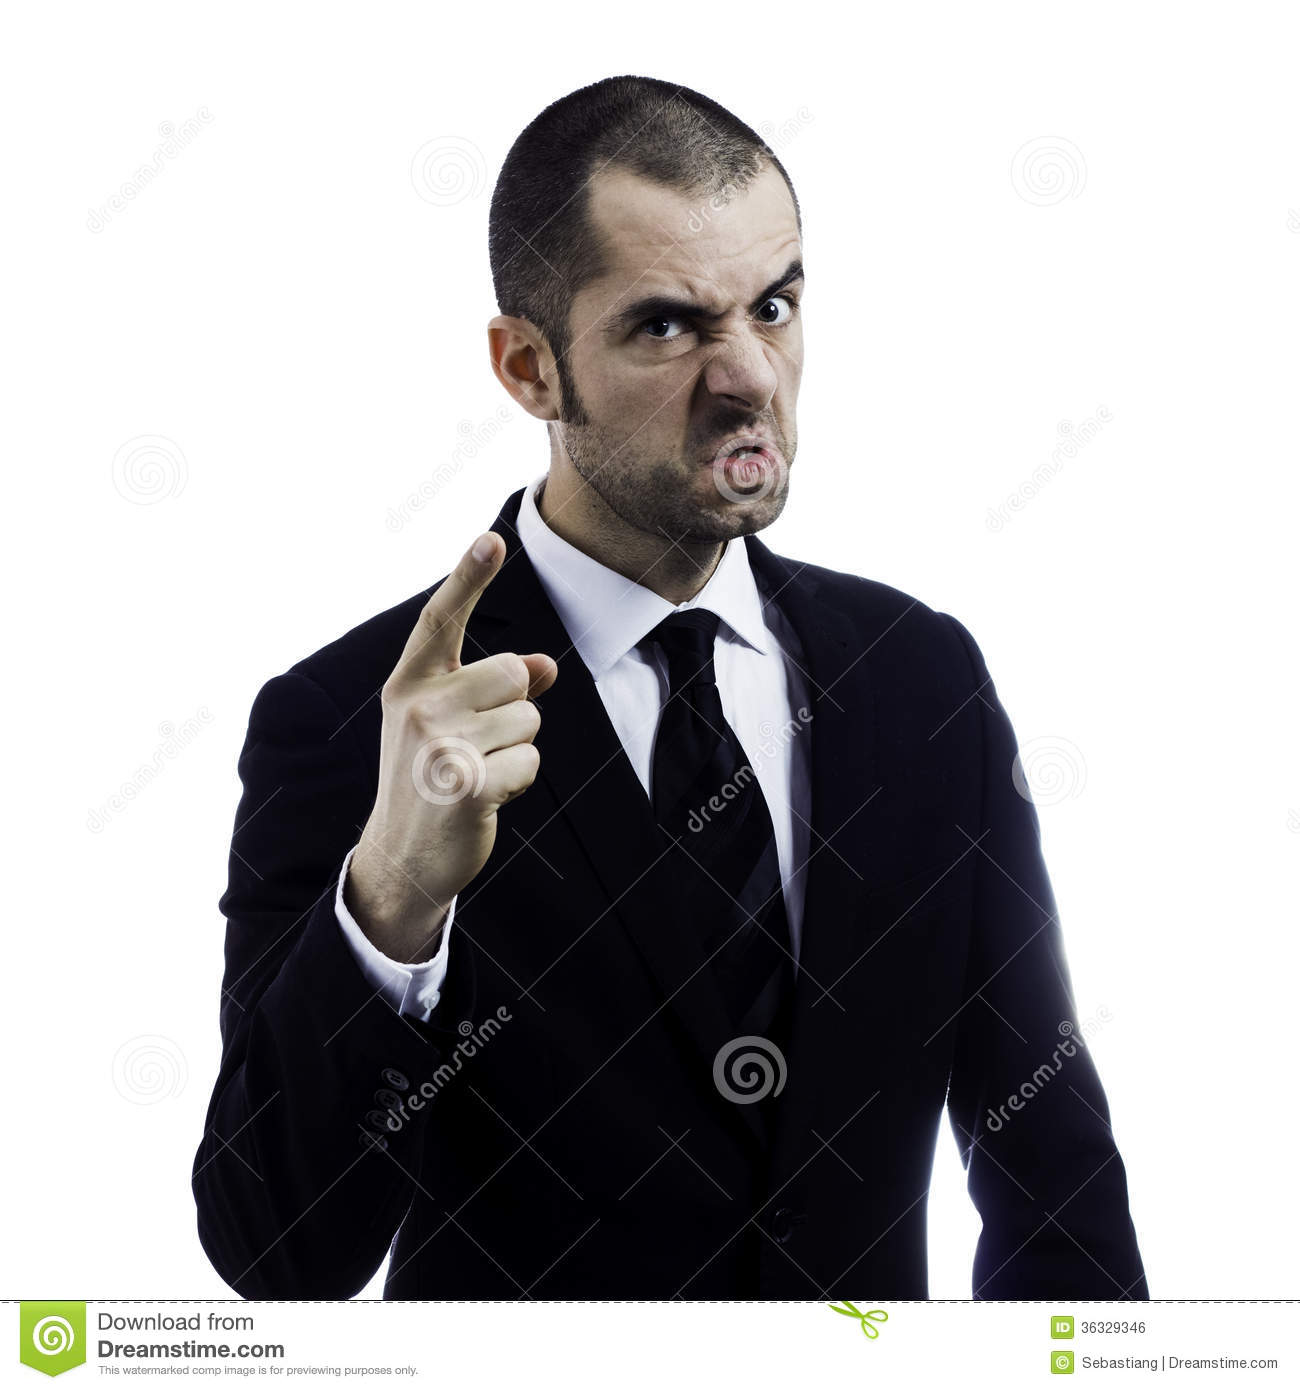 Angry boss stock photo. Image of company, hand, leader ...